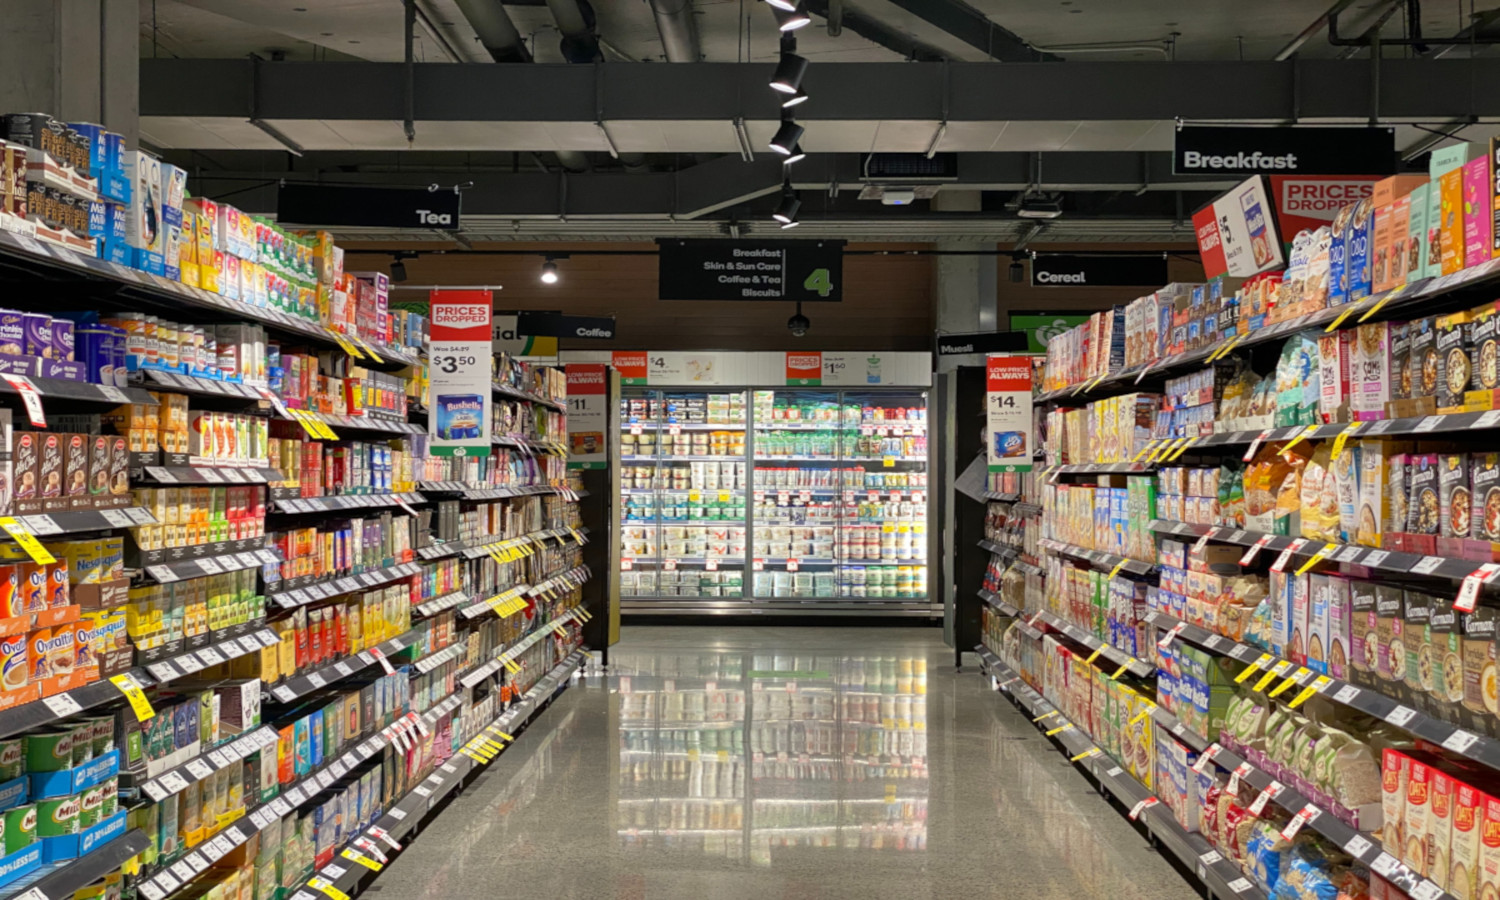 A recent report by the Rockefeller Foundation finds that the true cost of food in the U.S. is triple what the Americans currently spends on food.